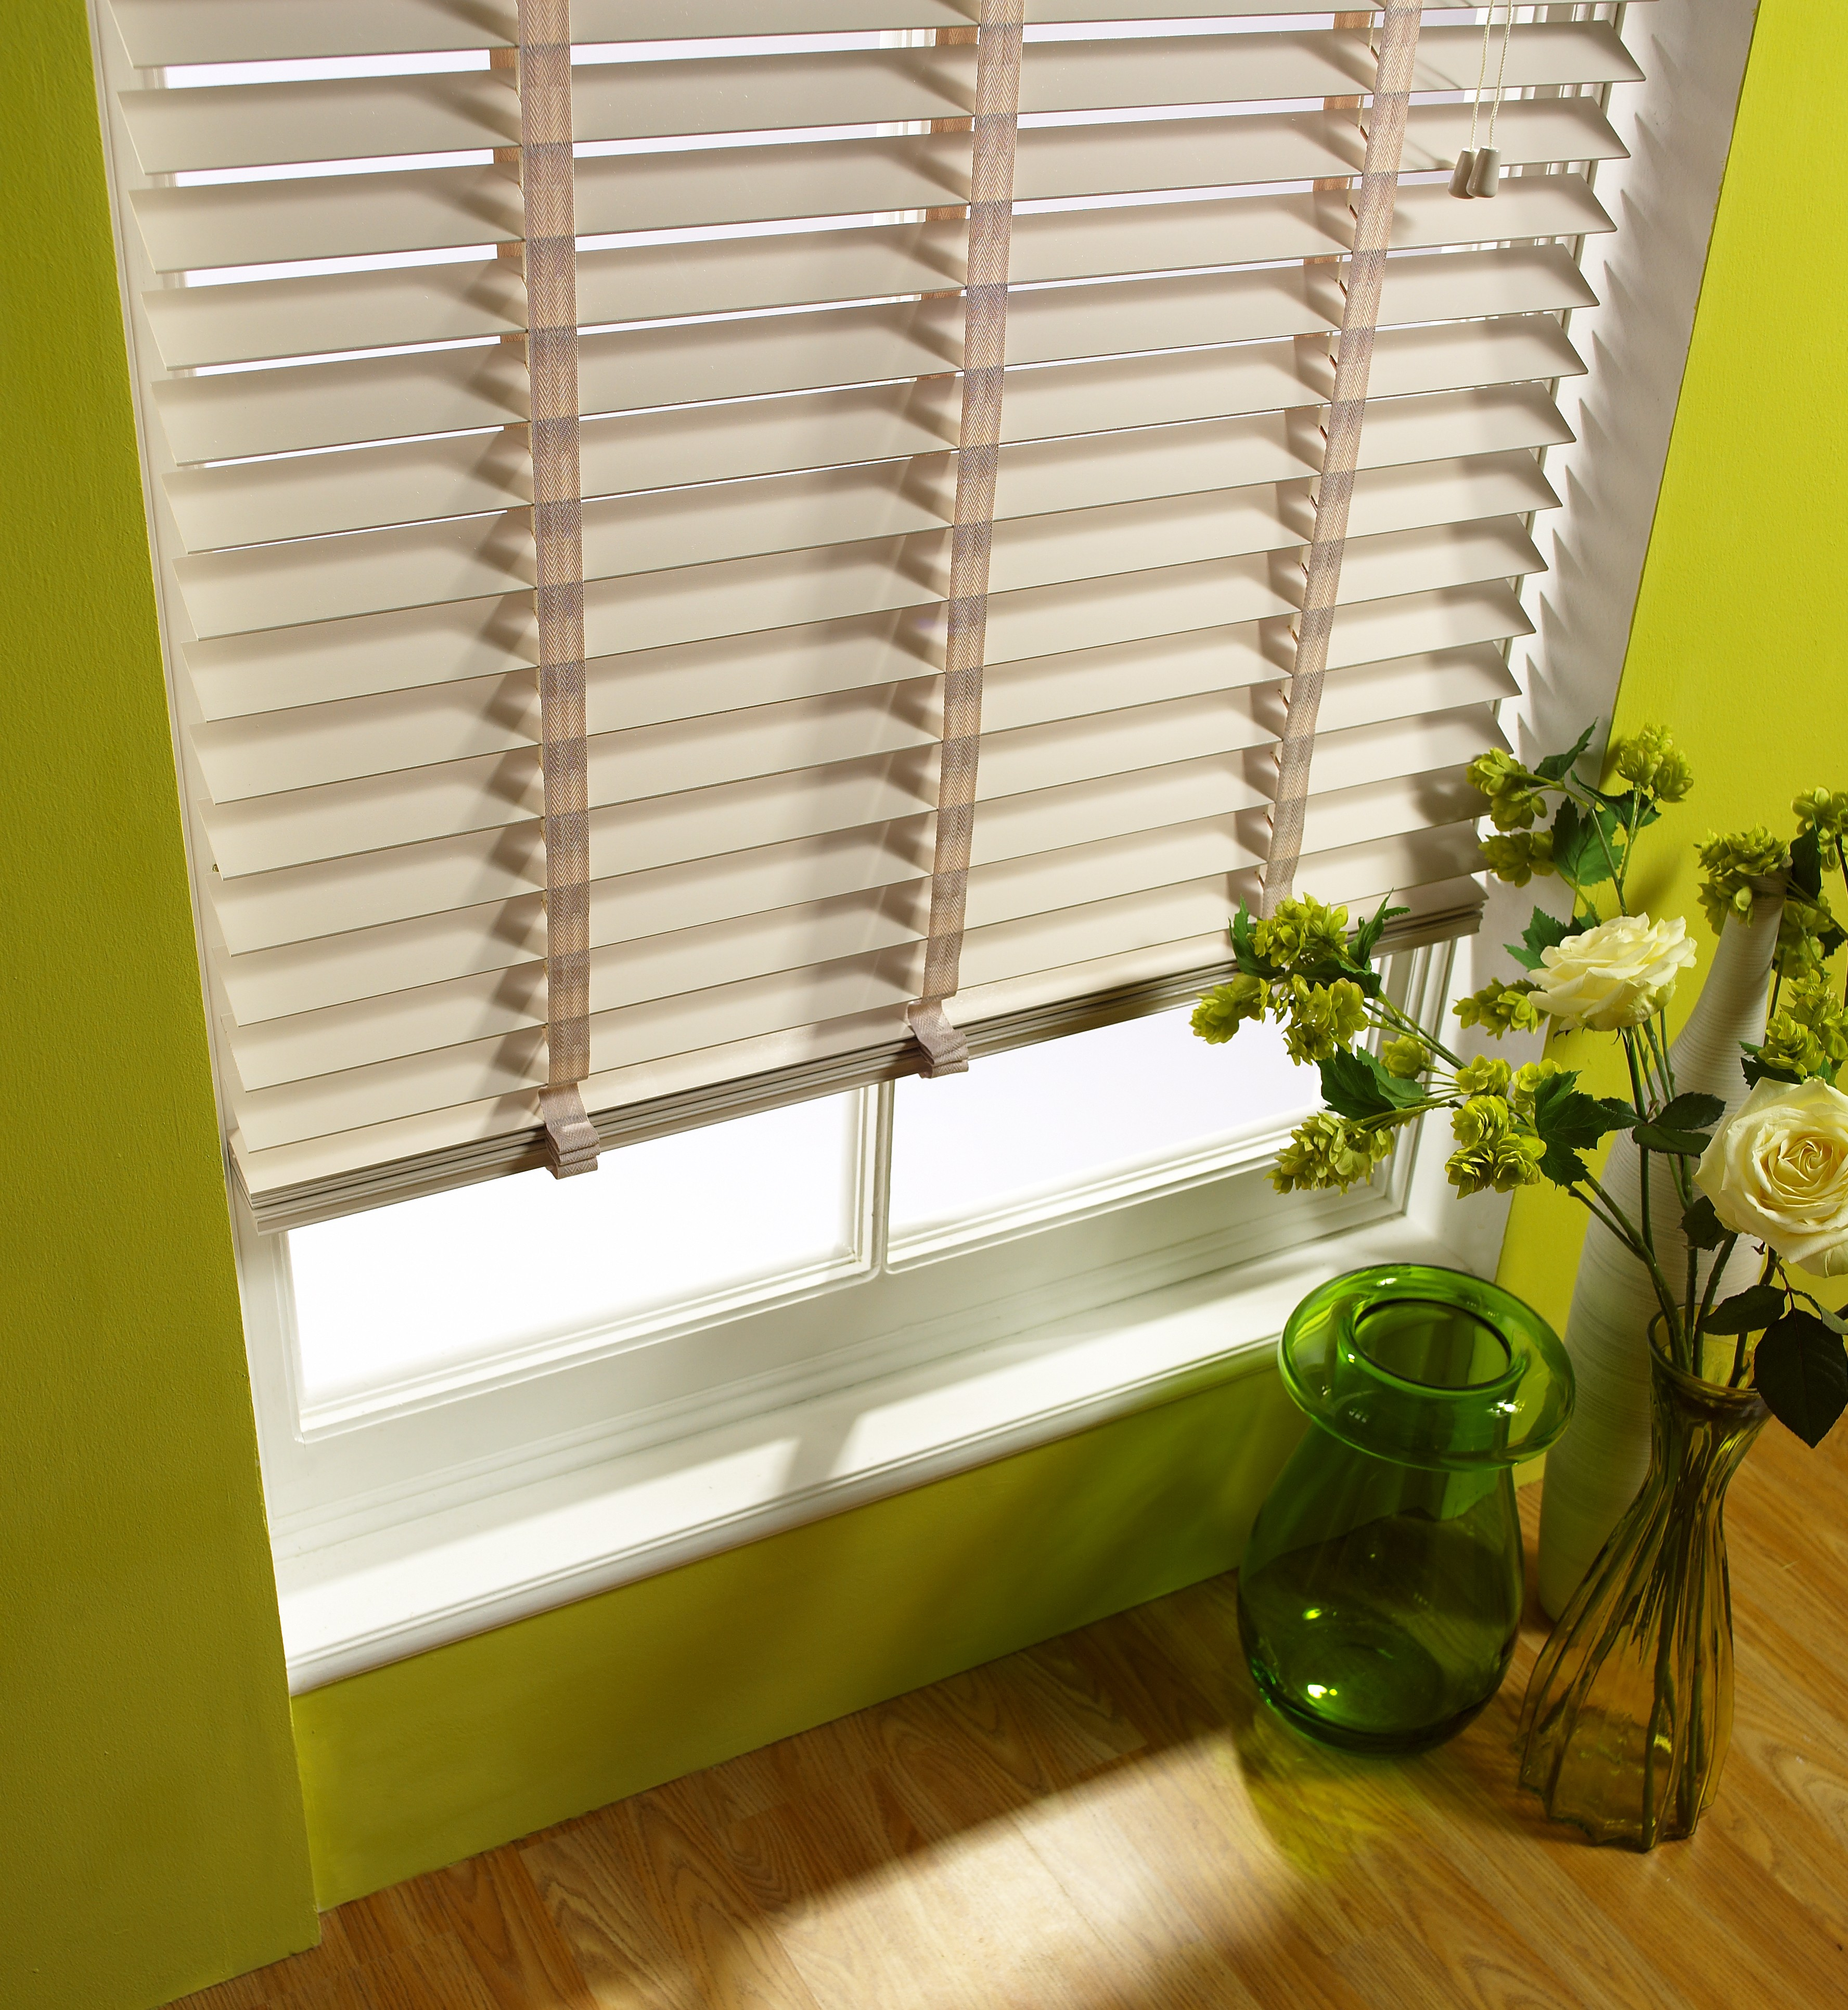 blinds stockton which any a choice east are express venetian with supplied north room collection of window all our wood compliment sunwoods wooden dressing stunning header